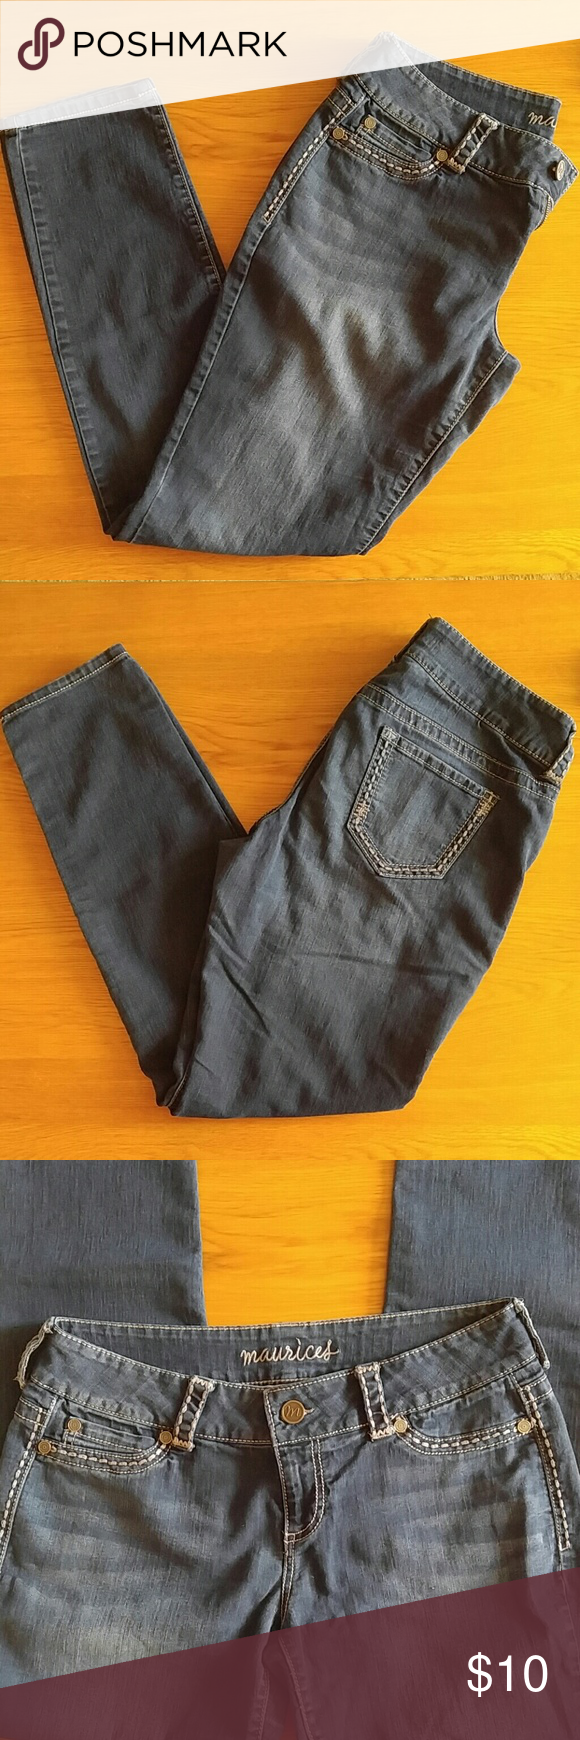 Maurices Jegging Very dark wash. No rips, holes or stains. Too big on me. Very dark blue wash. Maurices Jeans